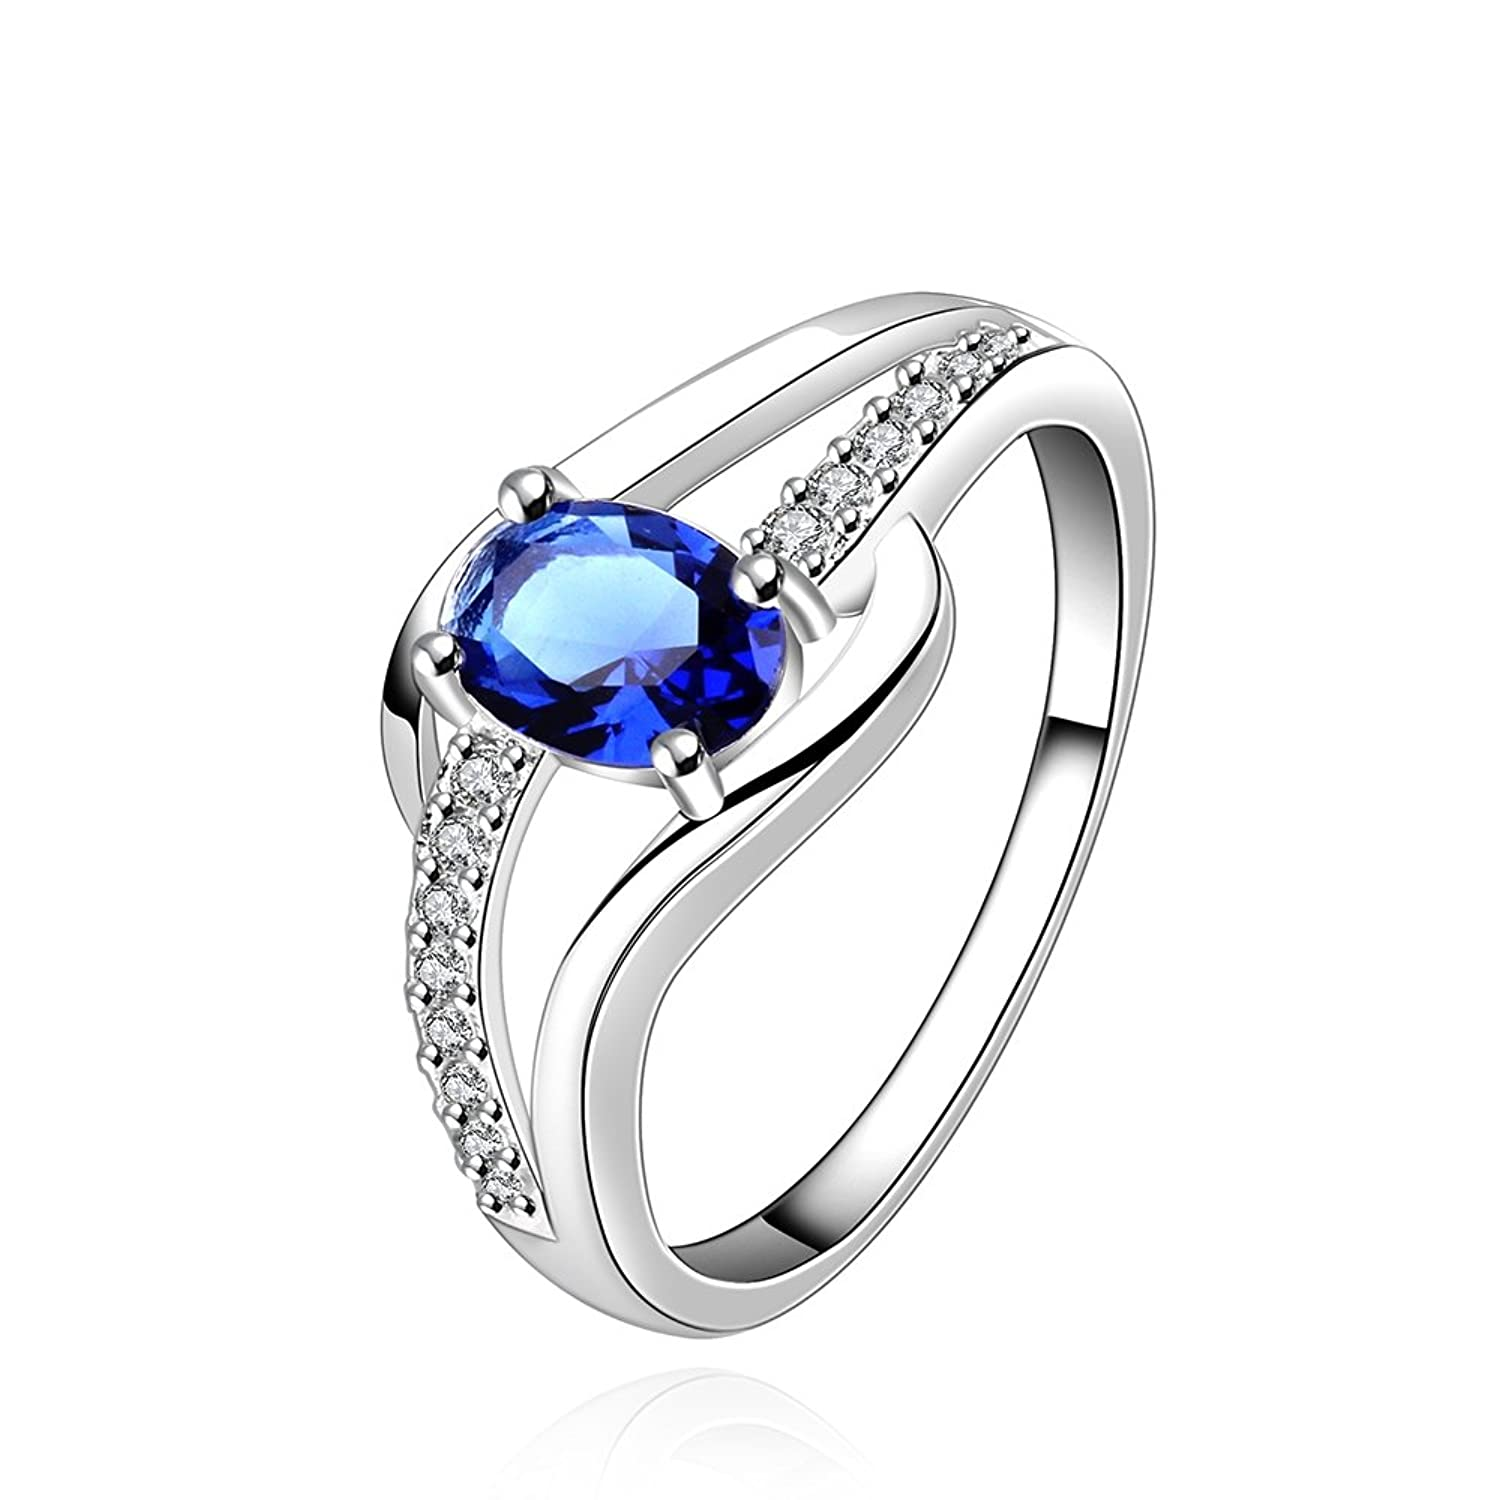 xhmitce photos rings stone in three platinum of sapphire diamond ring blue and gemstone